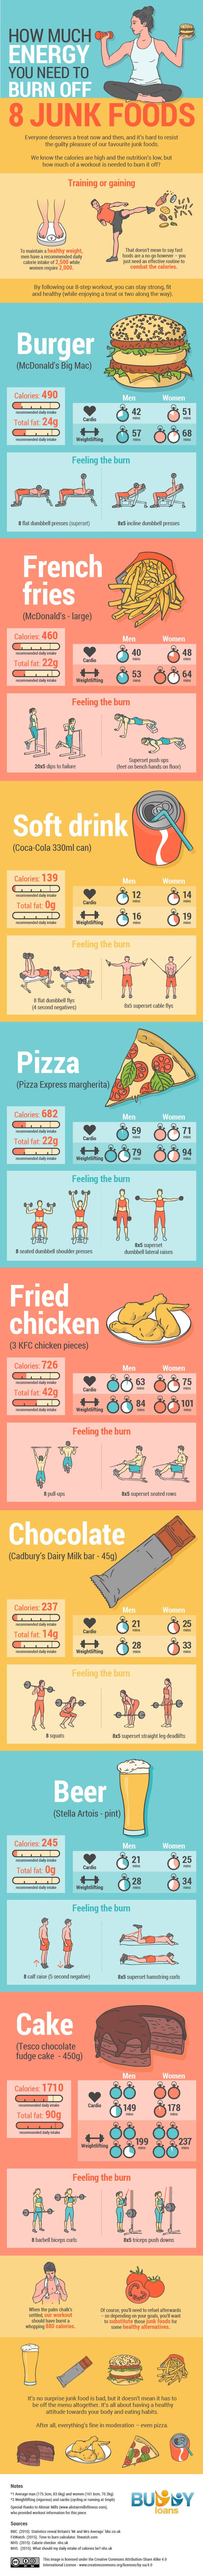 Would you still make the same food choices and choose junk food if you knew how much you needed to exercise just to burn those foods off?